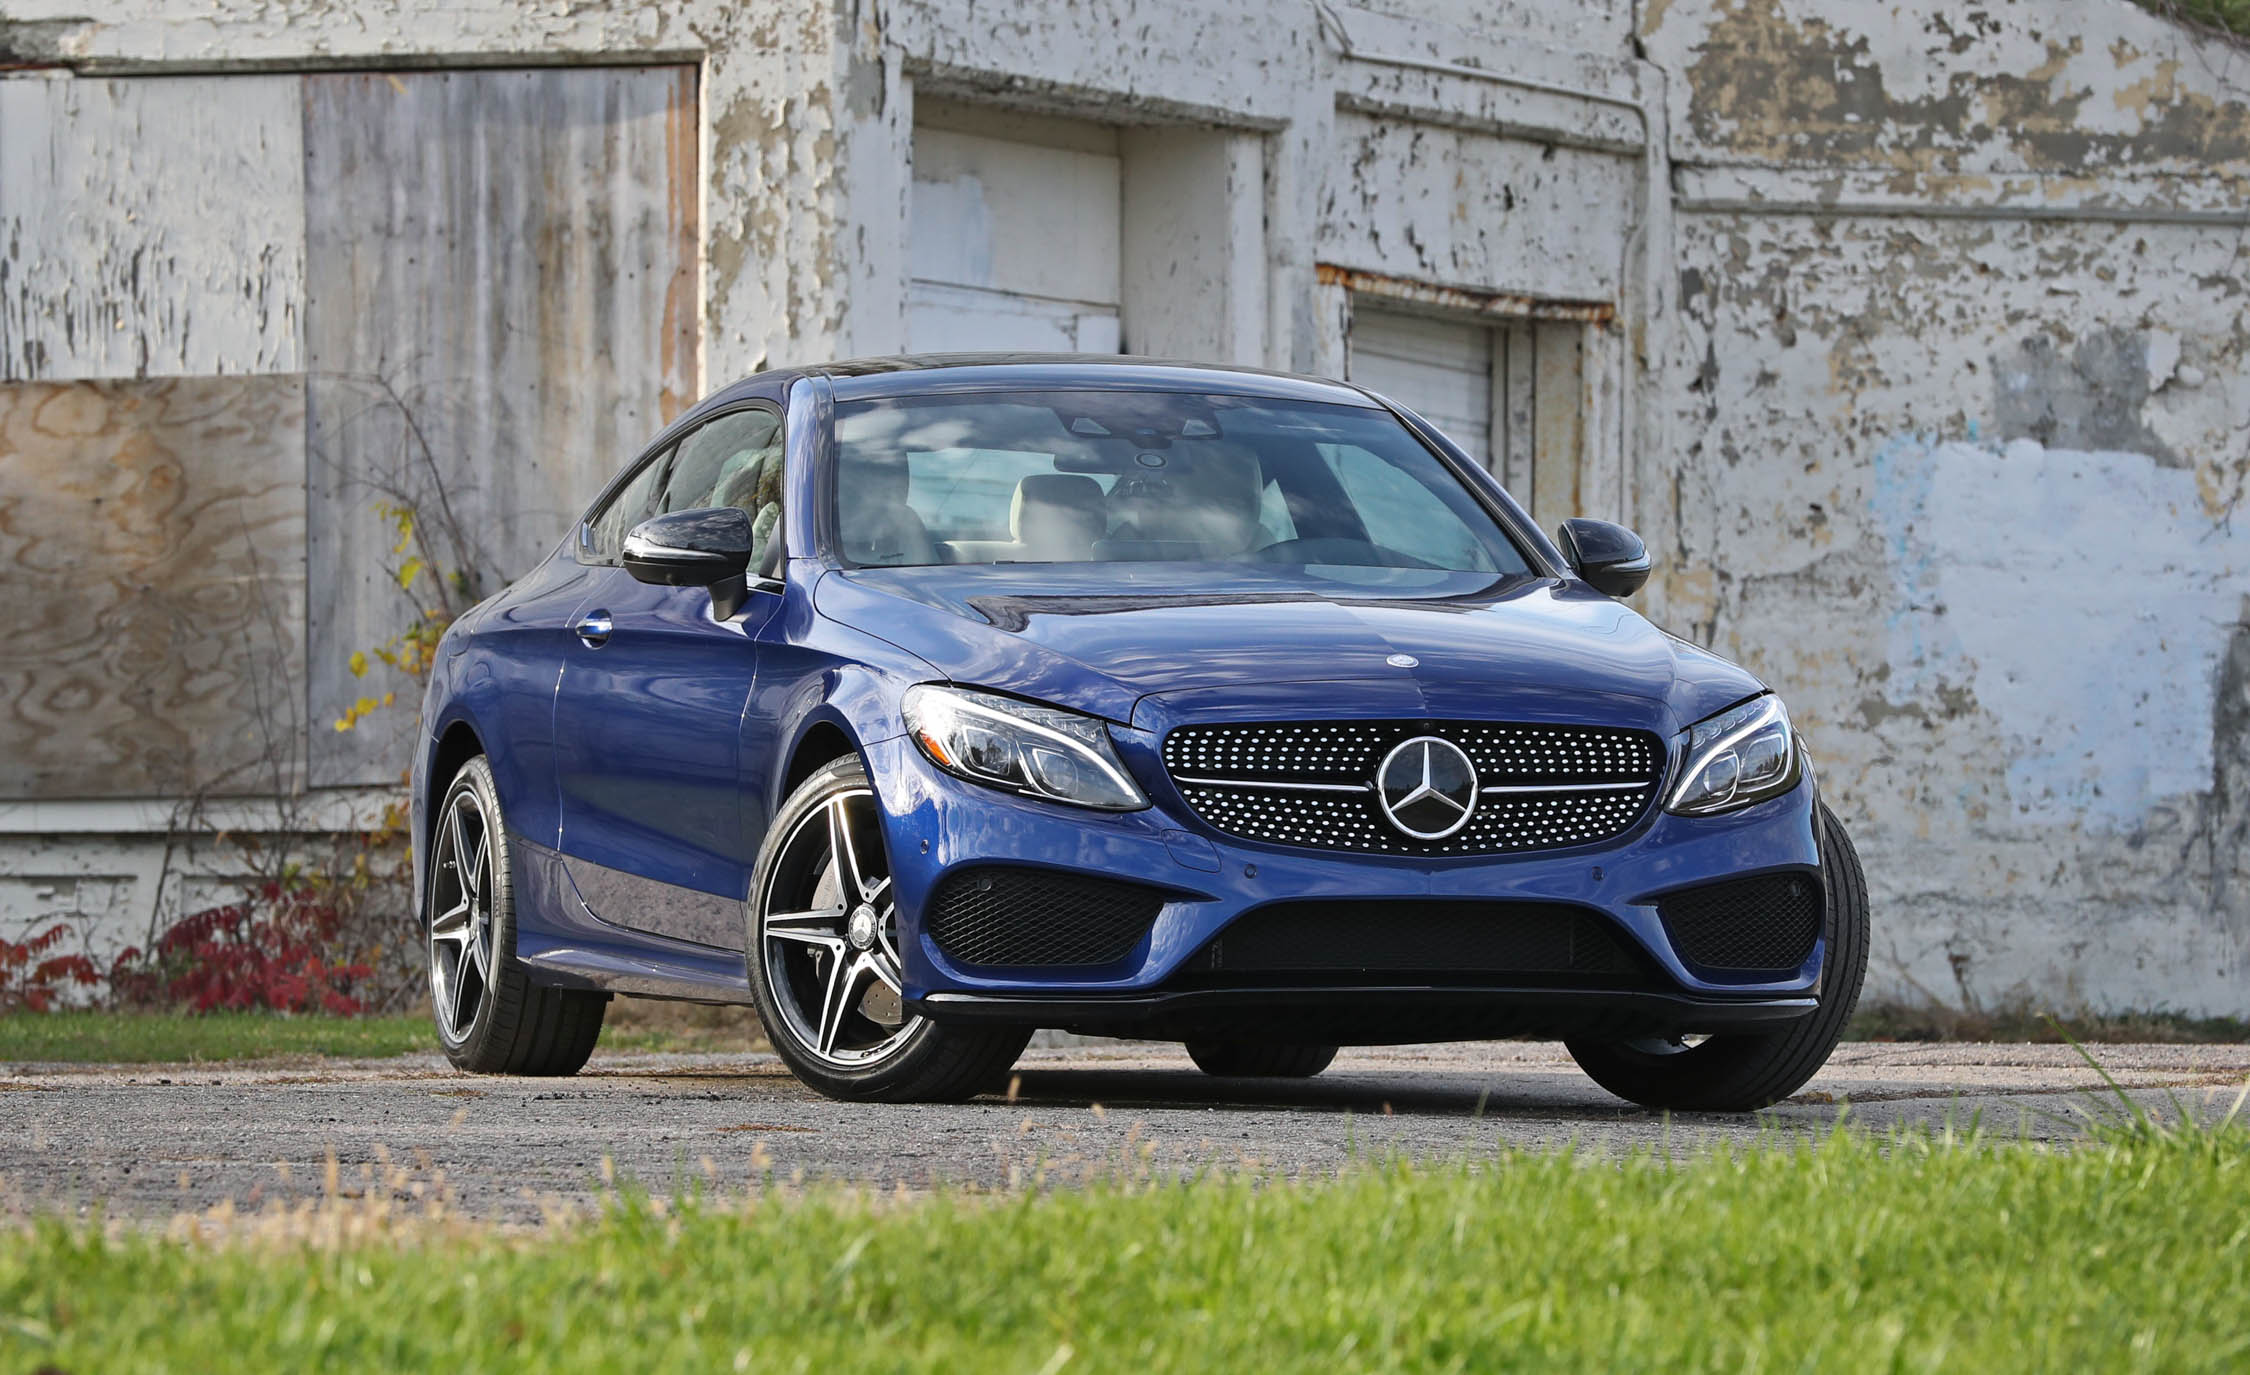 2017 Mercedes Benz C300 4MATIC Coupe Exterior Front Preview (View 44 of 44)